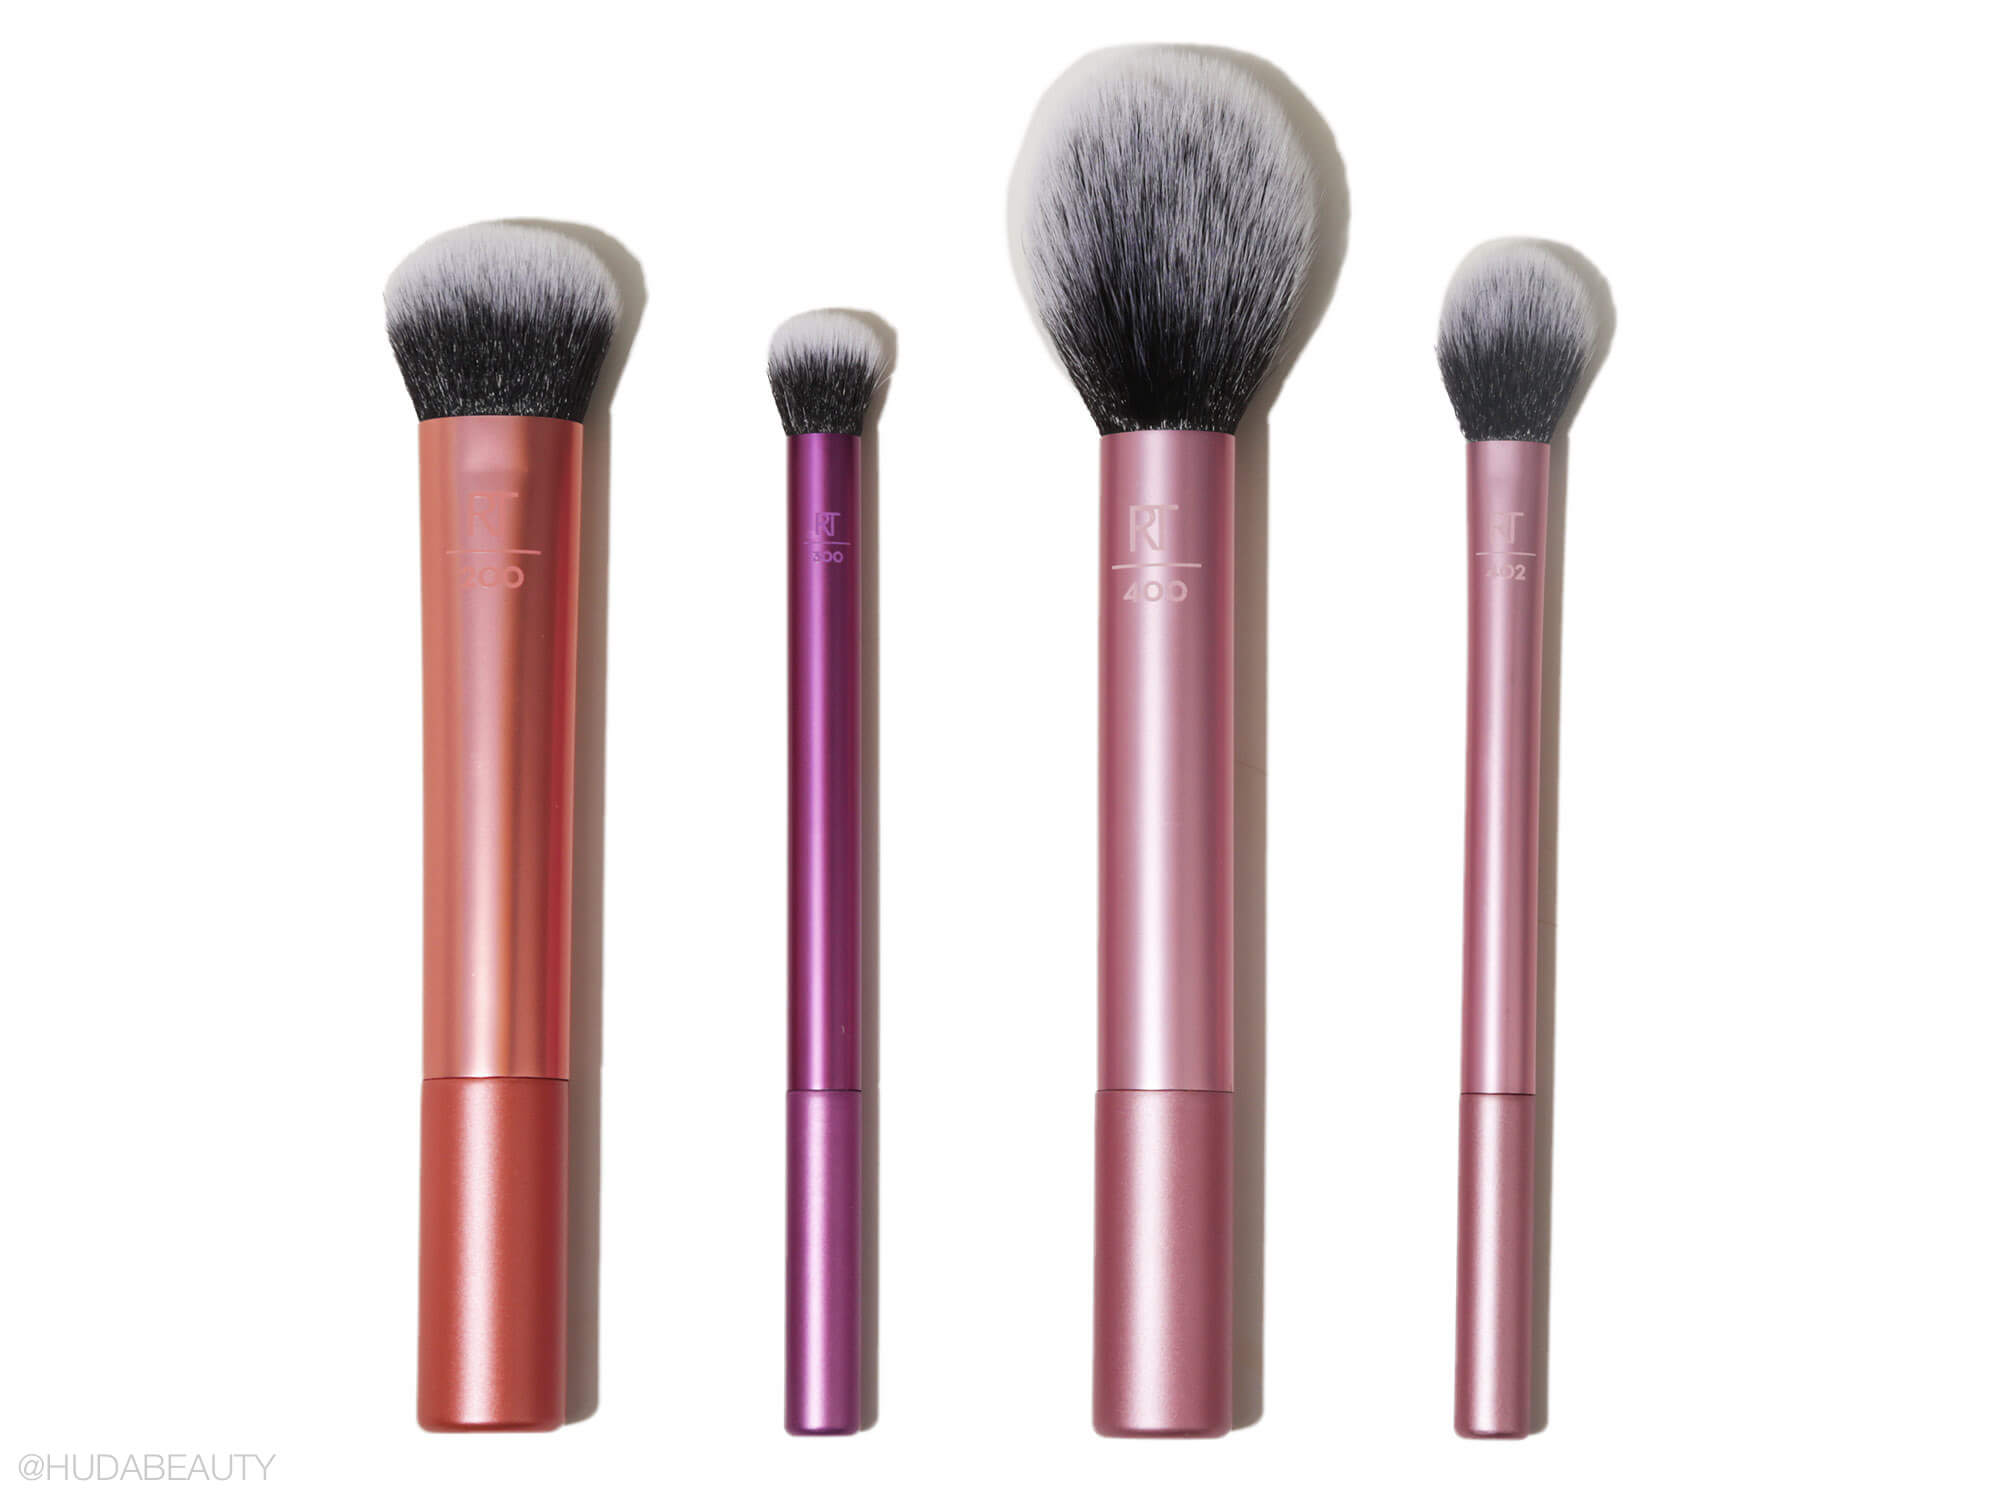 These Drugstore Makeup Brushes Are The Best Blog Huda Beauty